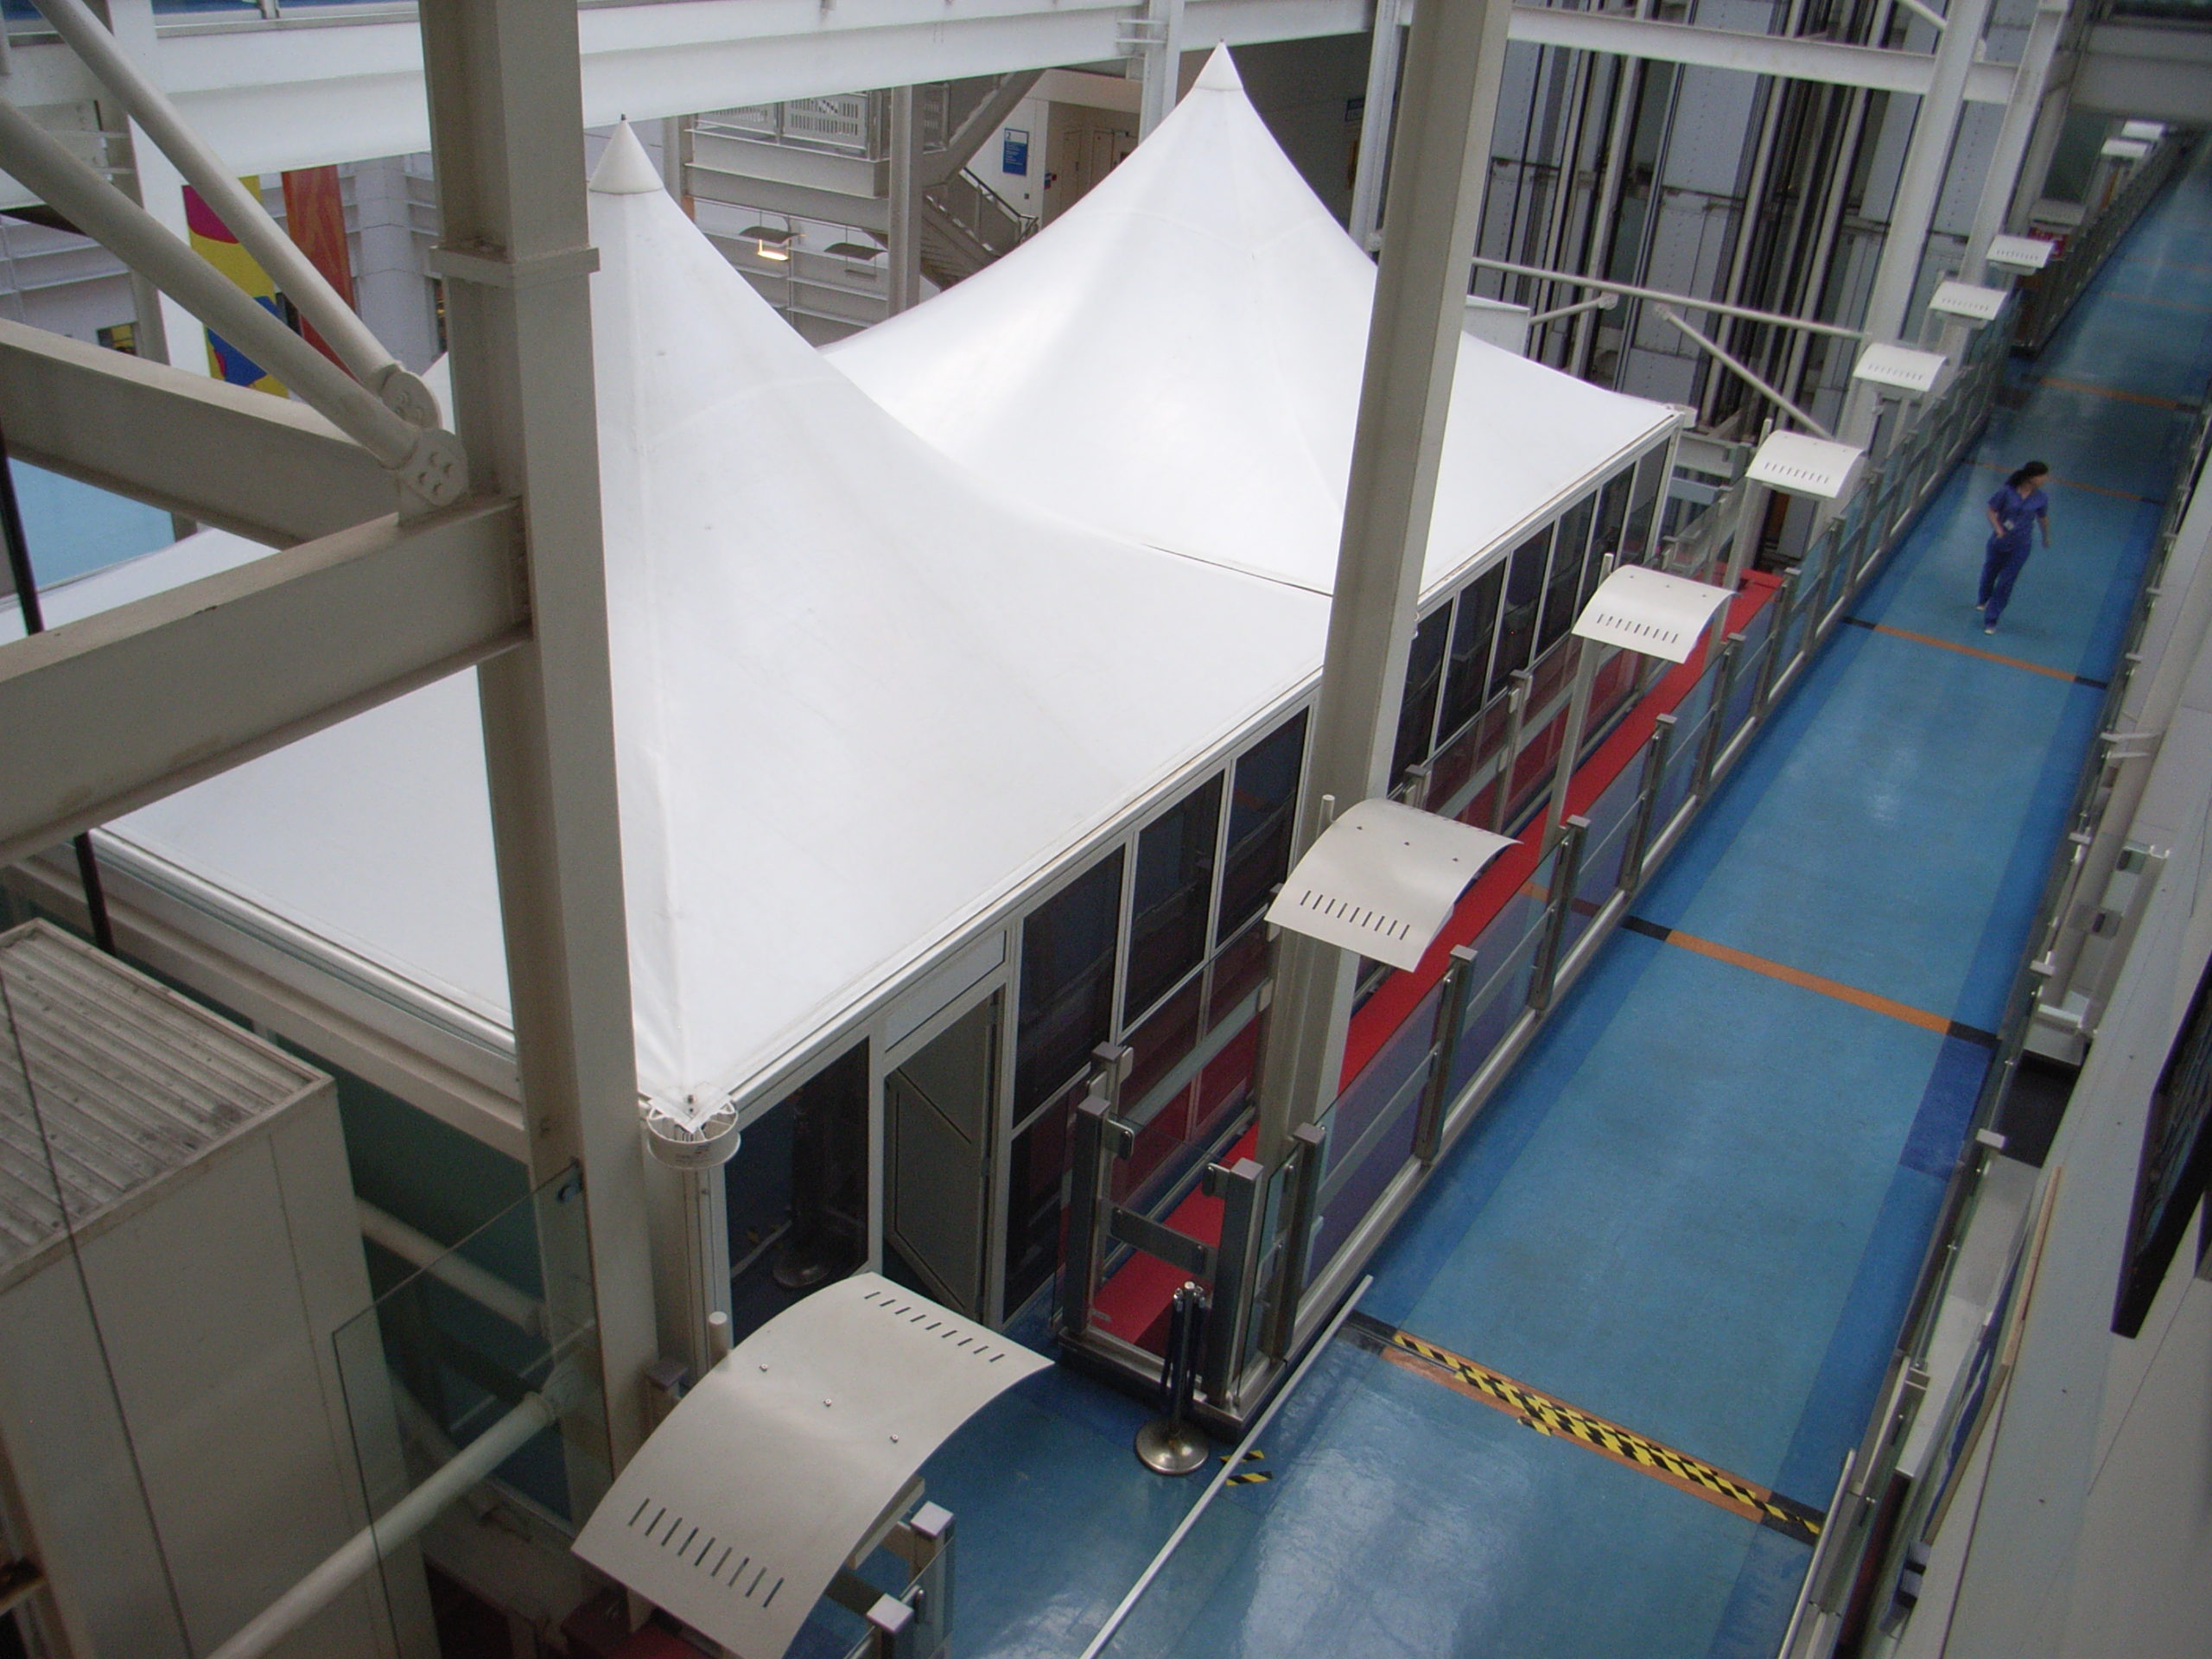 RIMG0042 scaled - London Hospital uses Showplace Structures for Space